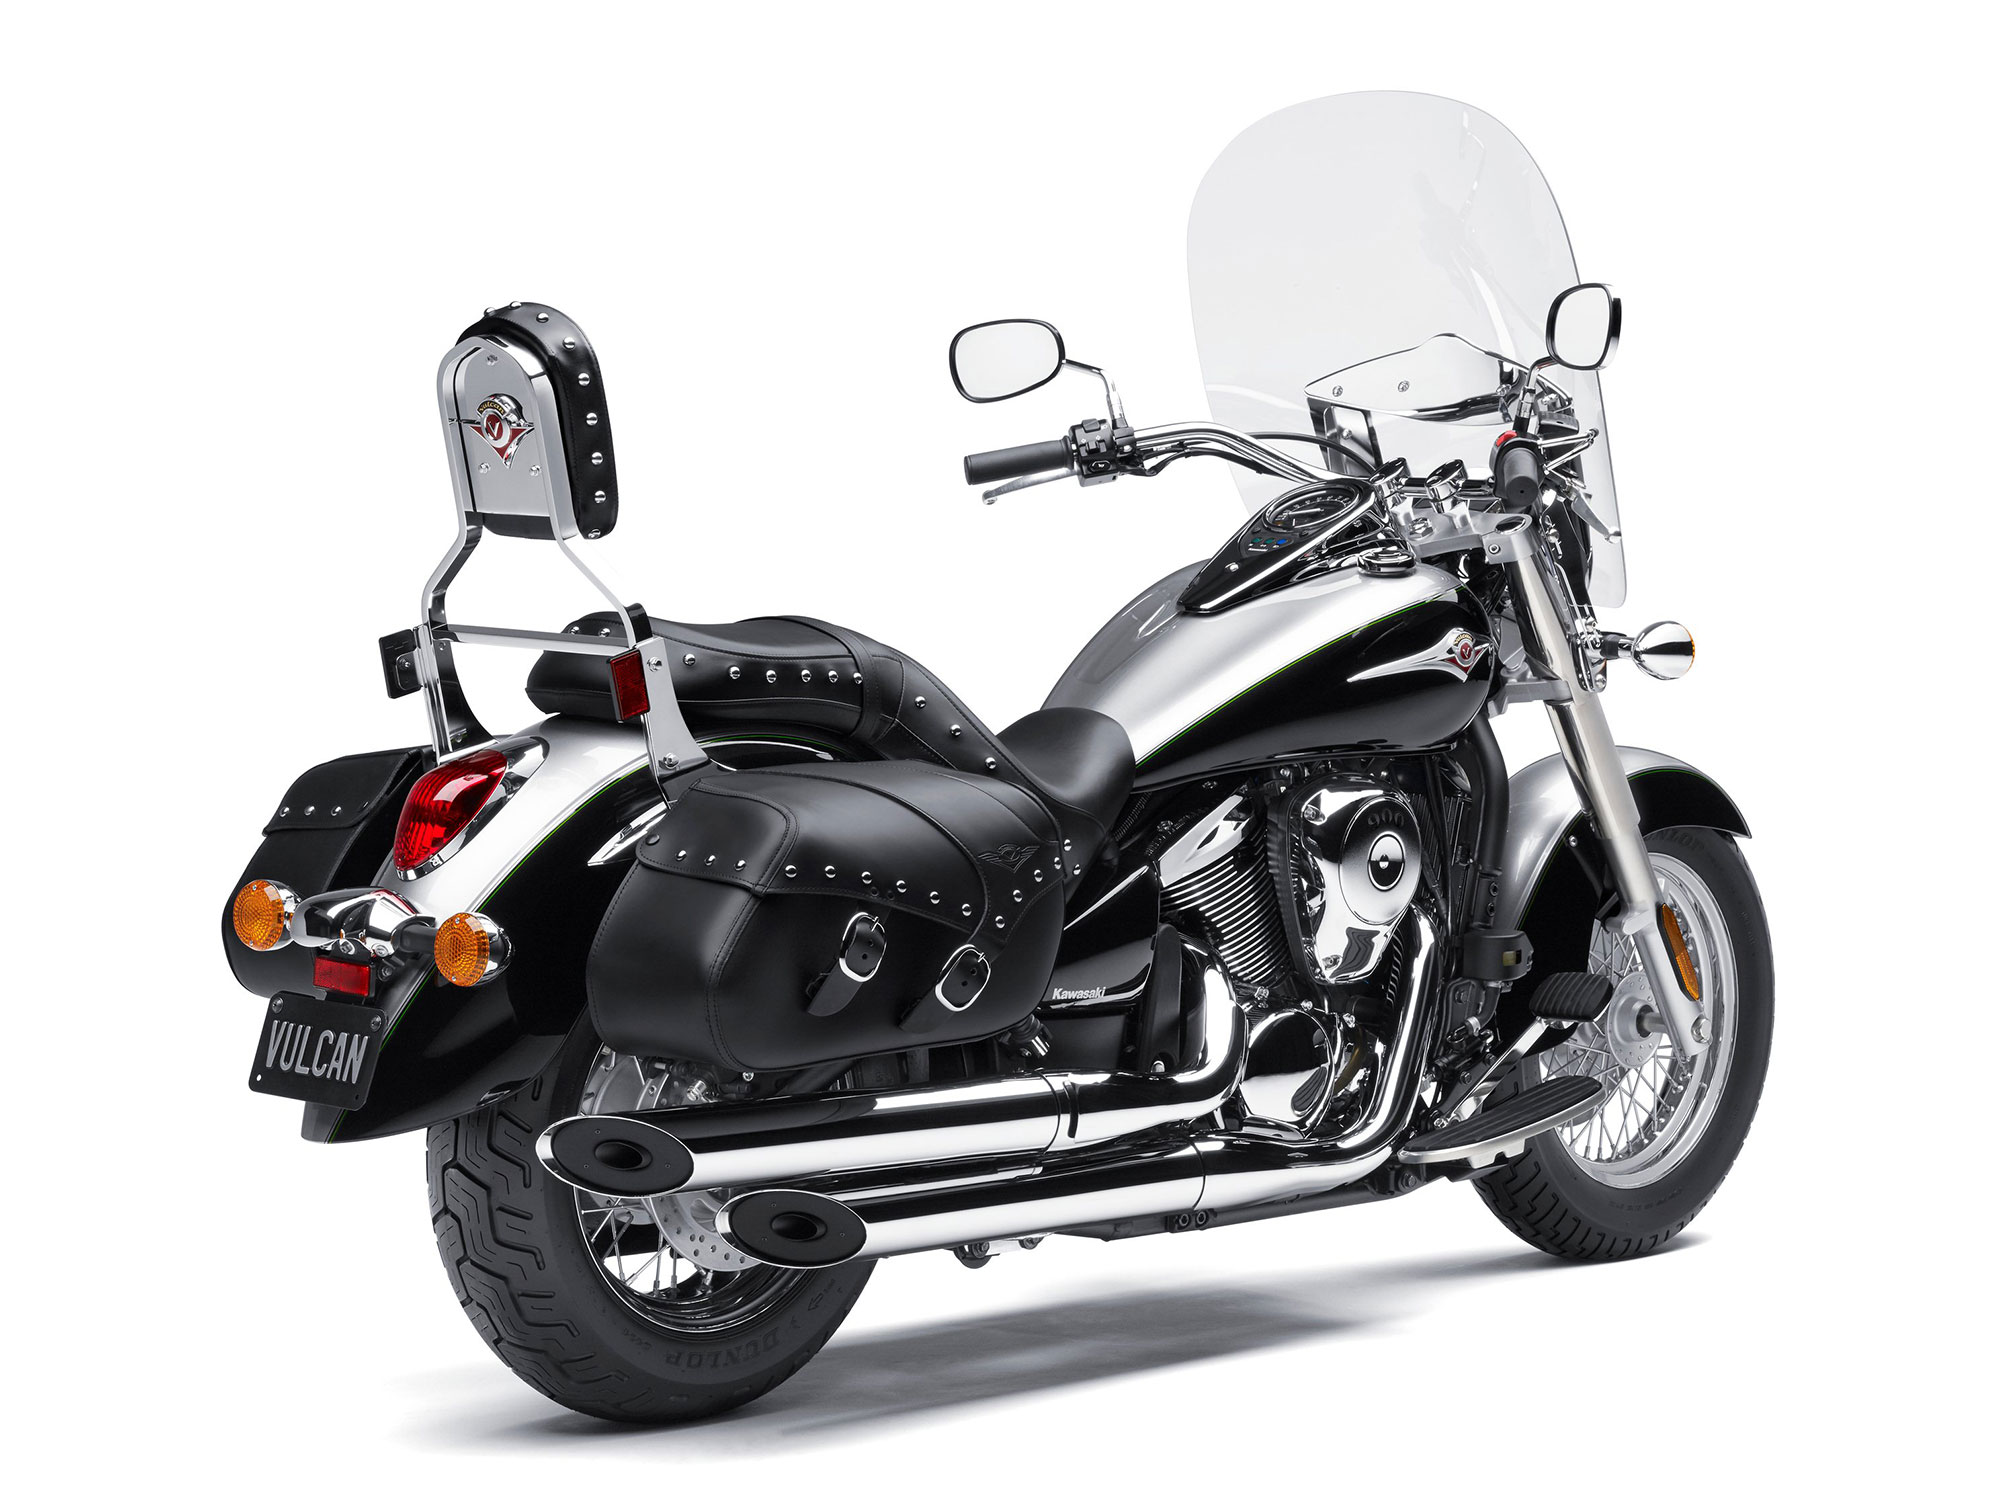 2016 kawasaki vulcan 900 classic lt review. Black Bedroom Furniture Sets. Home Design Ideas